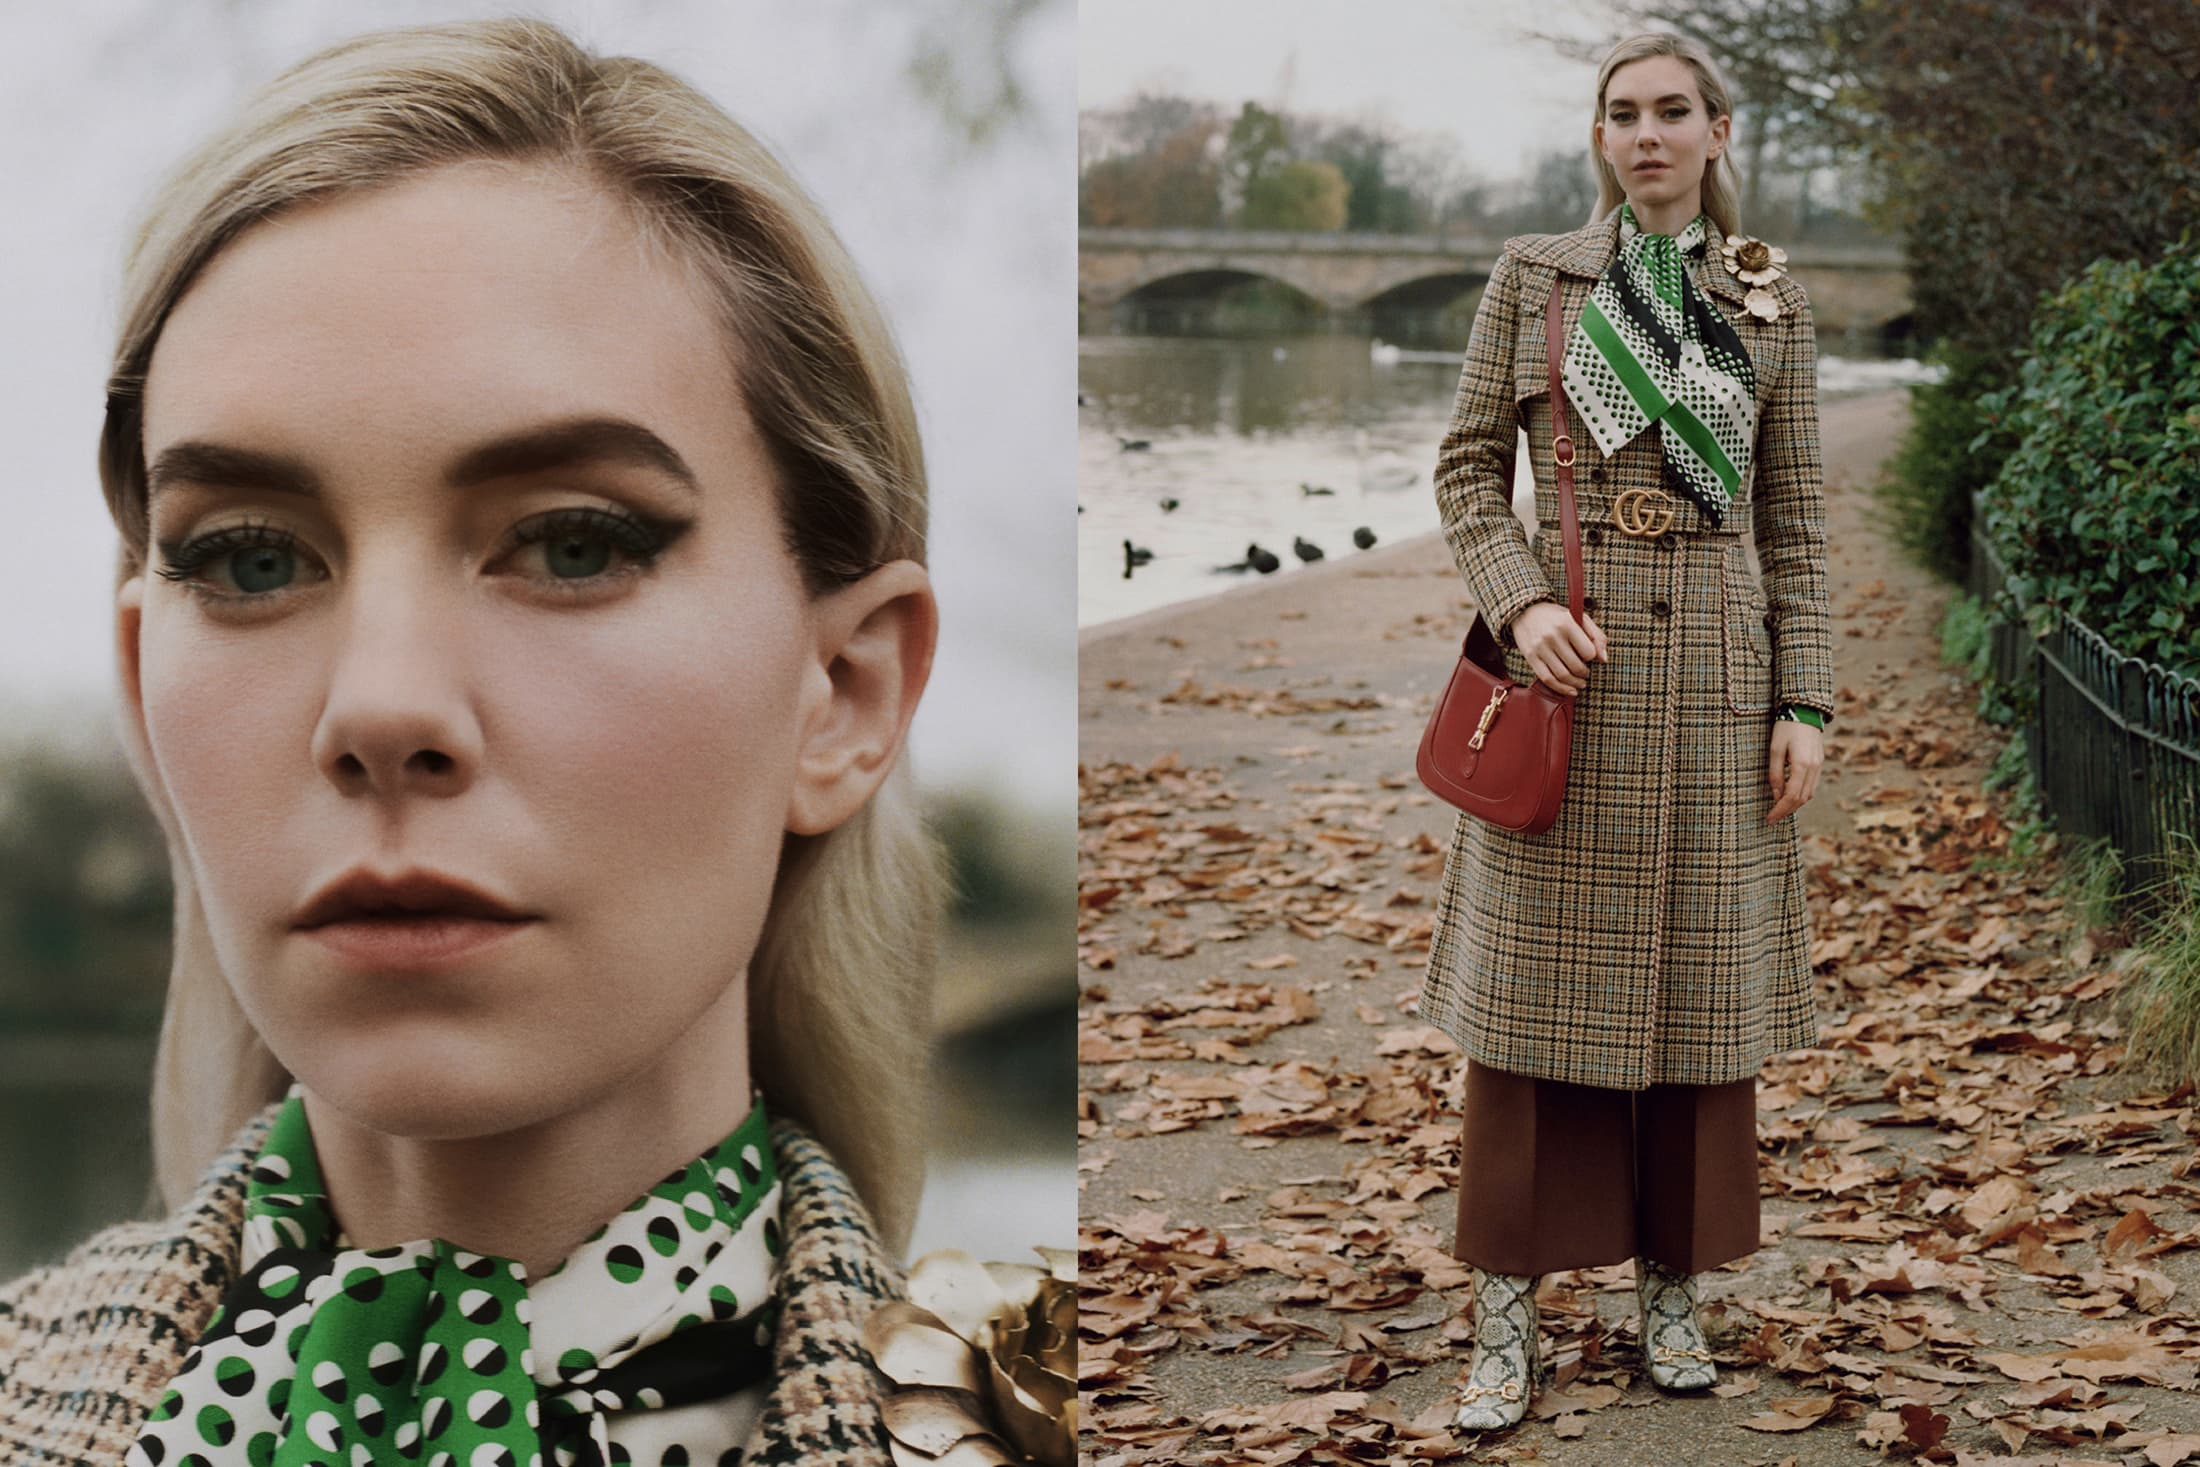 Gucci 'Winter In The Park' Spring 2021 Ad Campaign & Photos